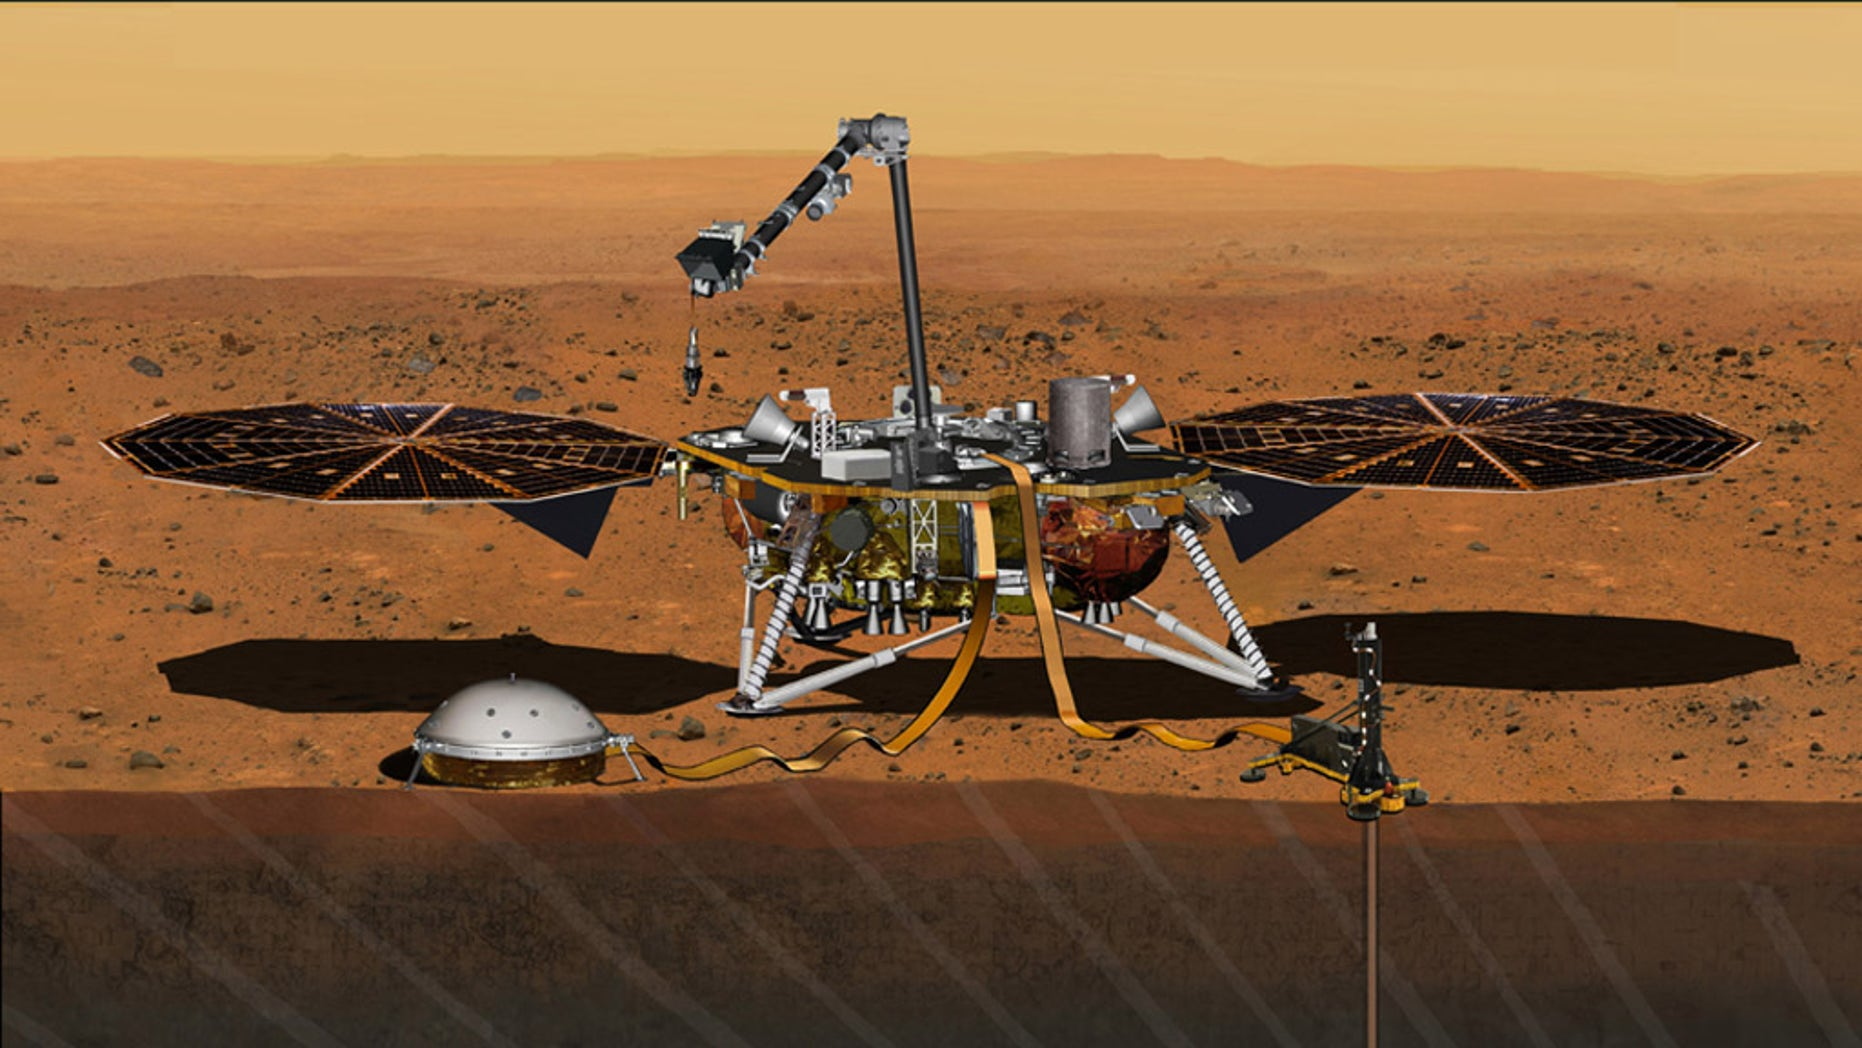 This artist's concept from August 2015 depicts NASA's InSight Mars lander fully deployed for studying the deep interior of the Red Planet. The lander is scheduled to launch in the spring of 2018.